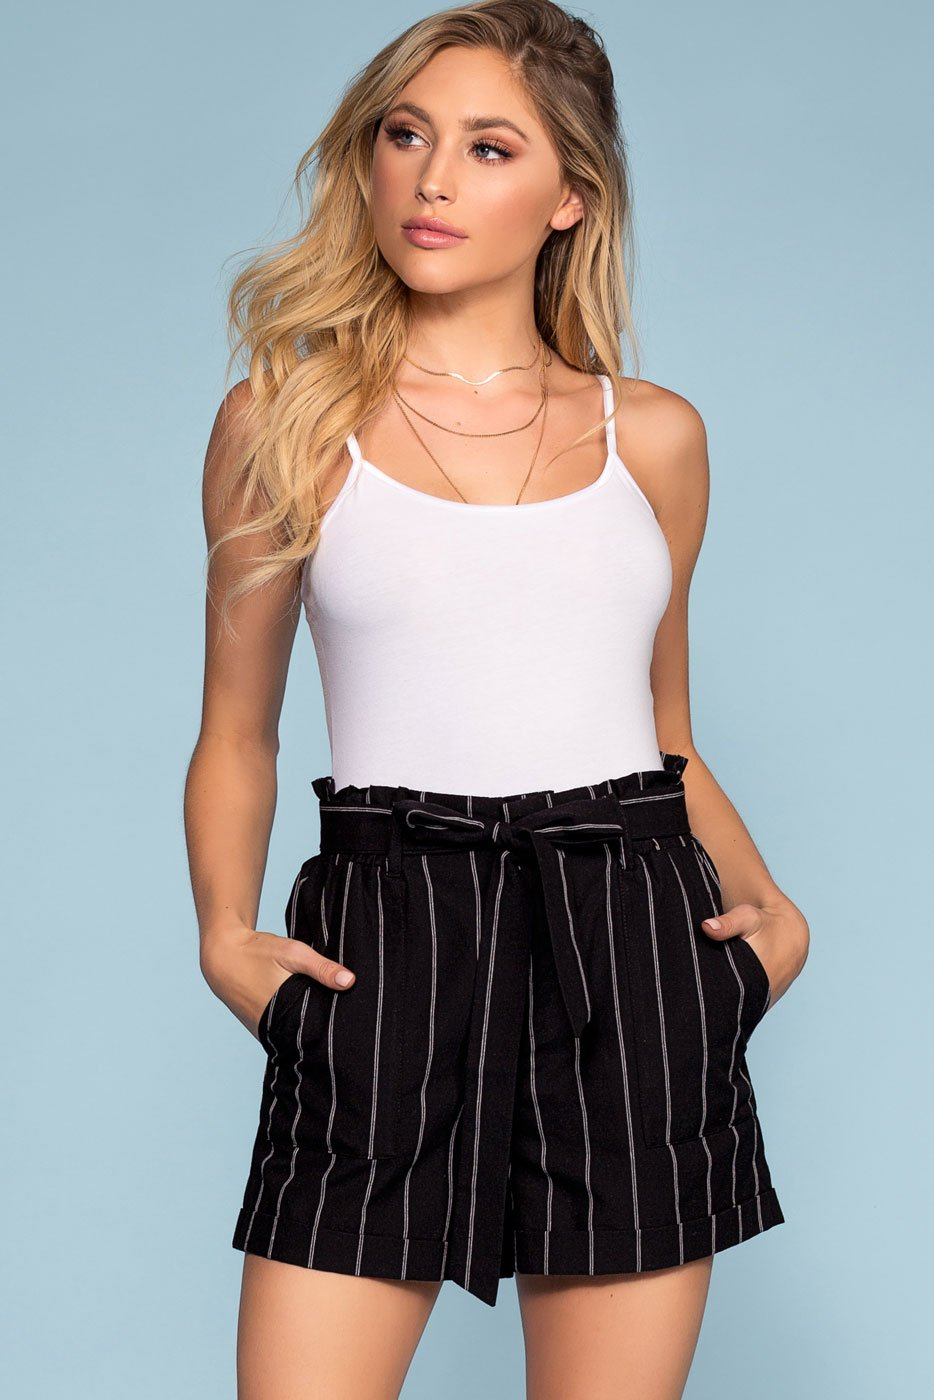 Shorts - Clairmont High Waisted Stripe Shorts - Black